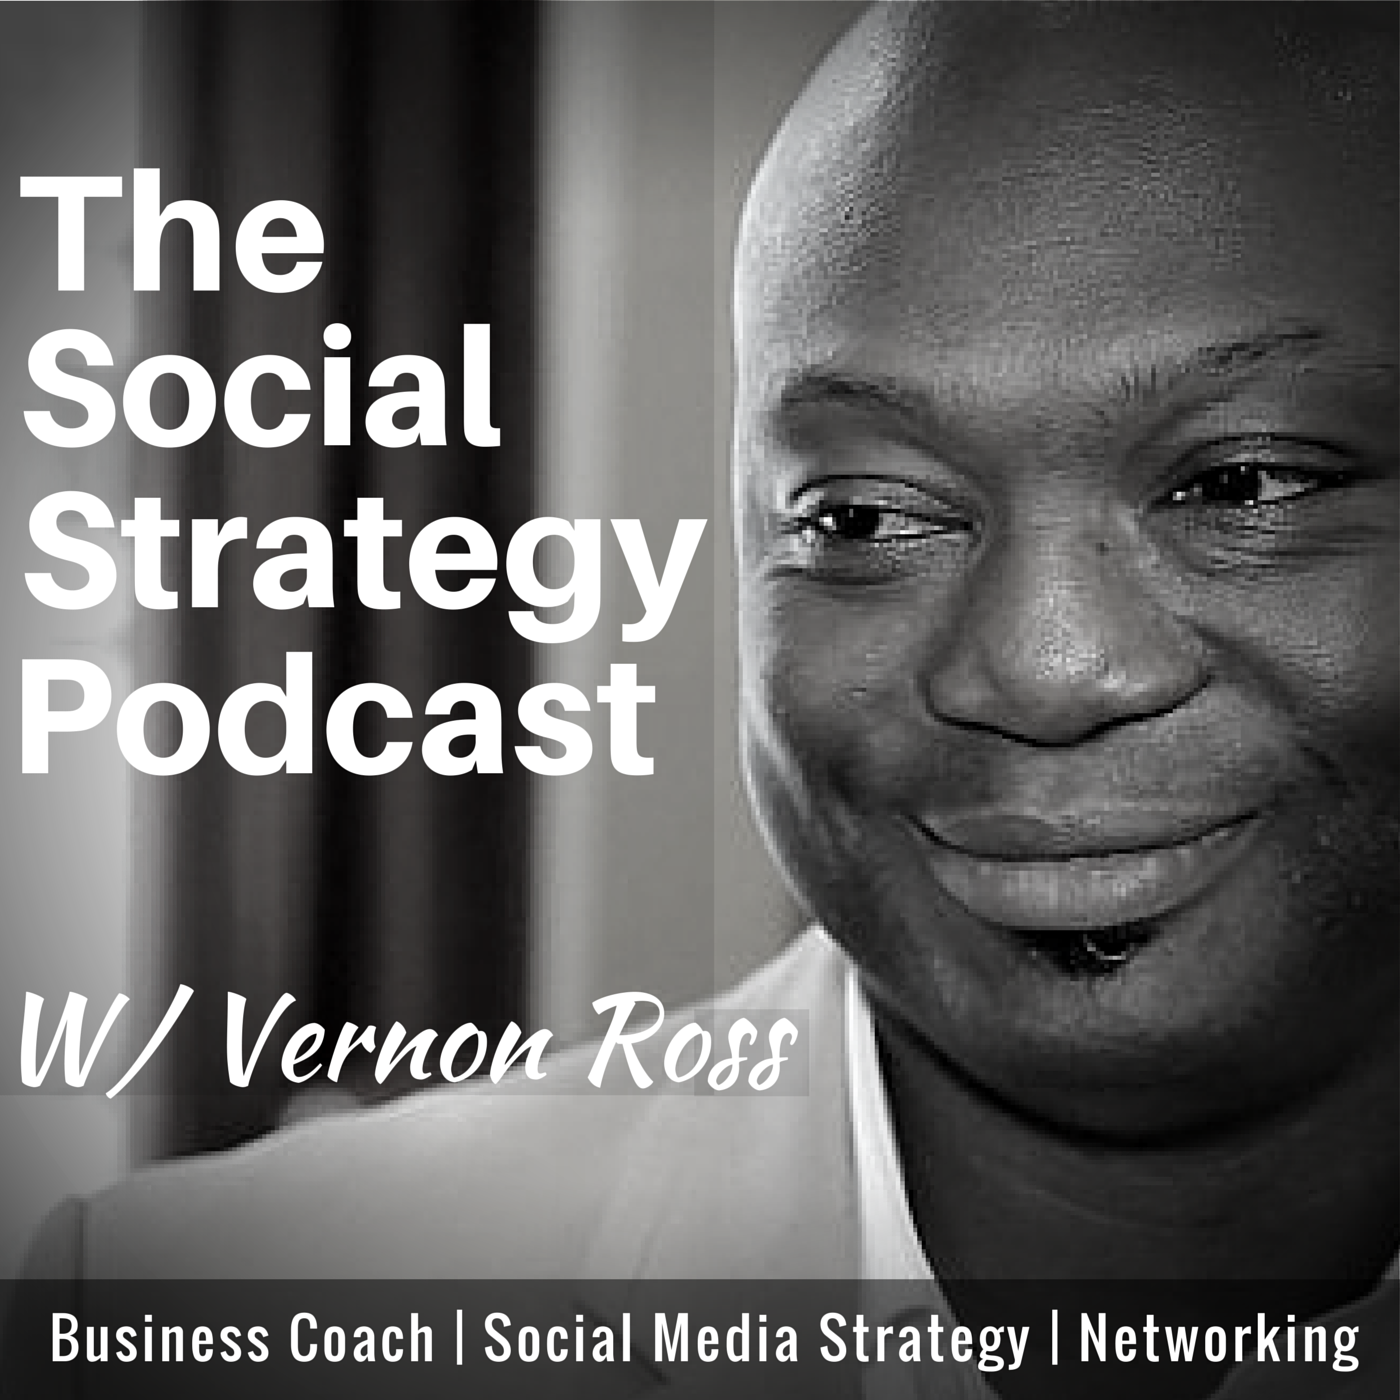 The Social Strategy Podcast: Online Business | Social Media Strategy | Networking | Vernon Ross